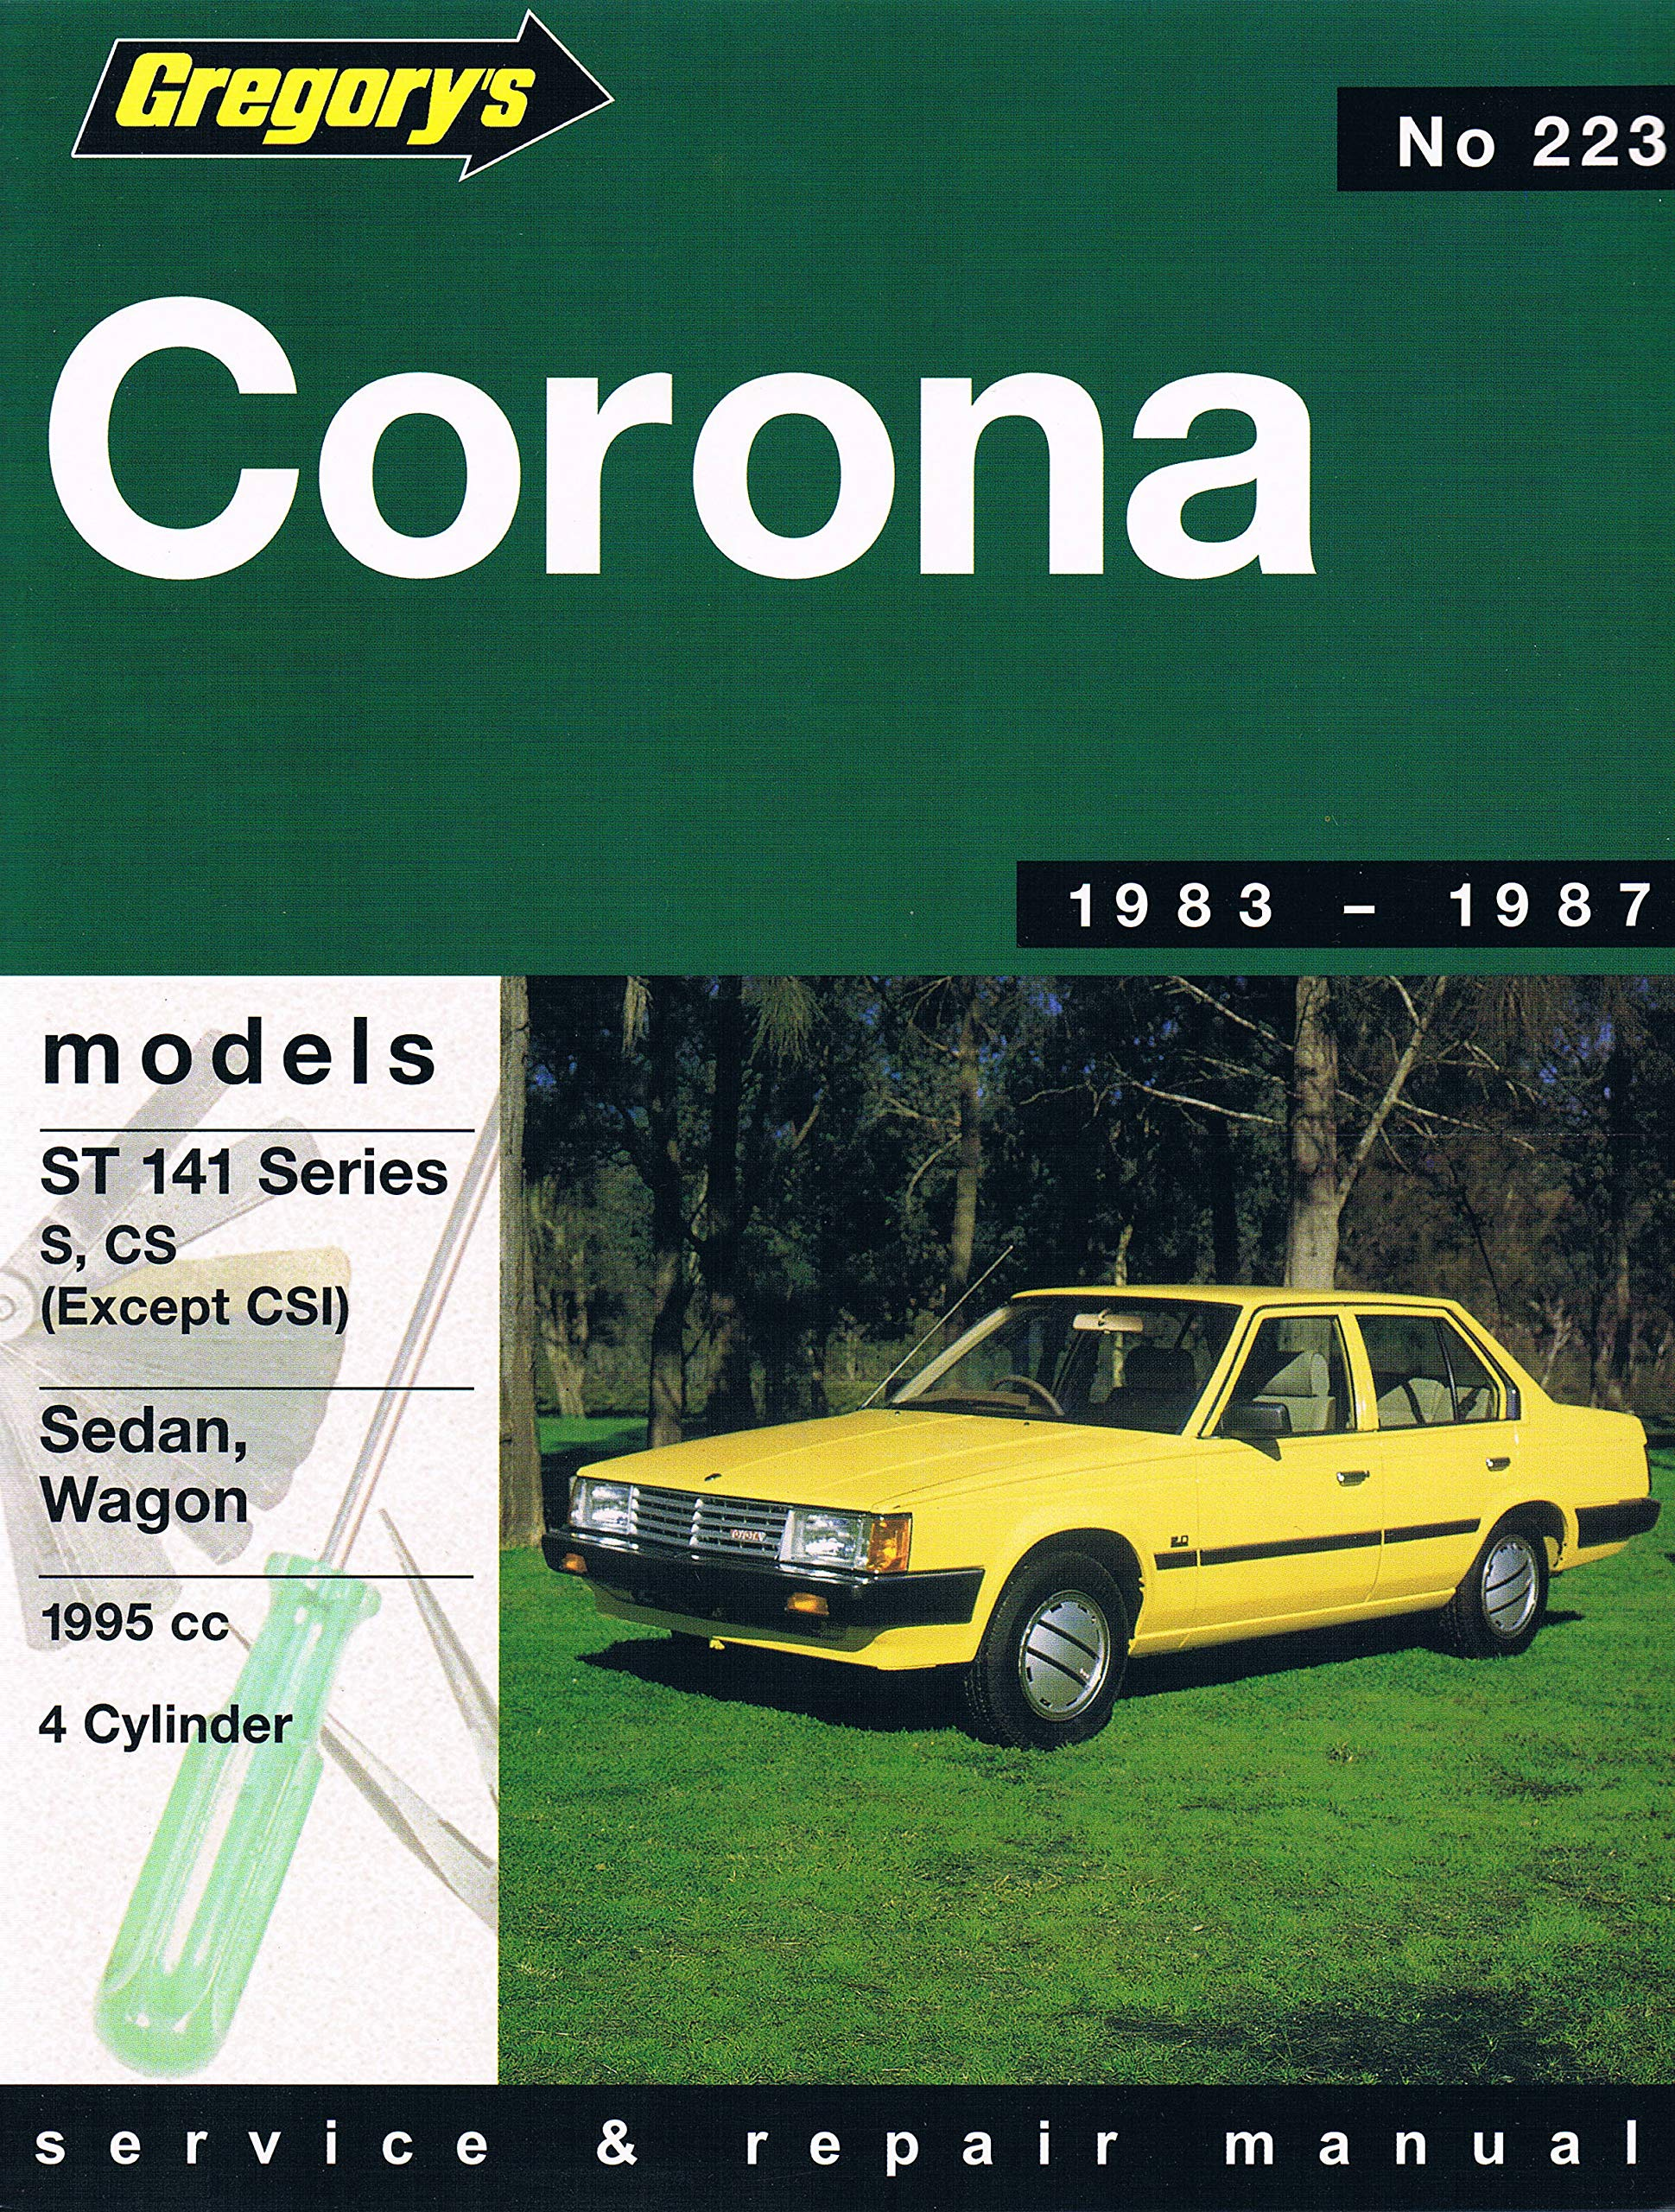 Toyota Corona St141 1995cc (1983-87): Service and Repair Manual: Gregory's:  9780855666576: Amazon.com: Books